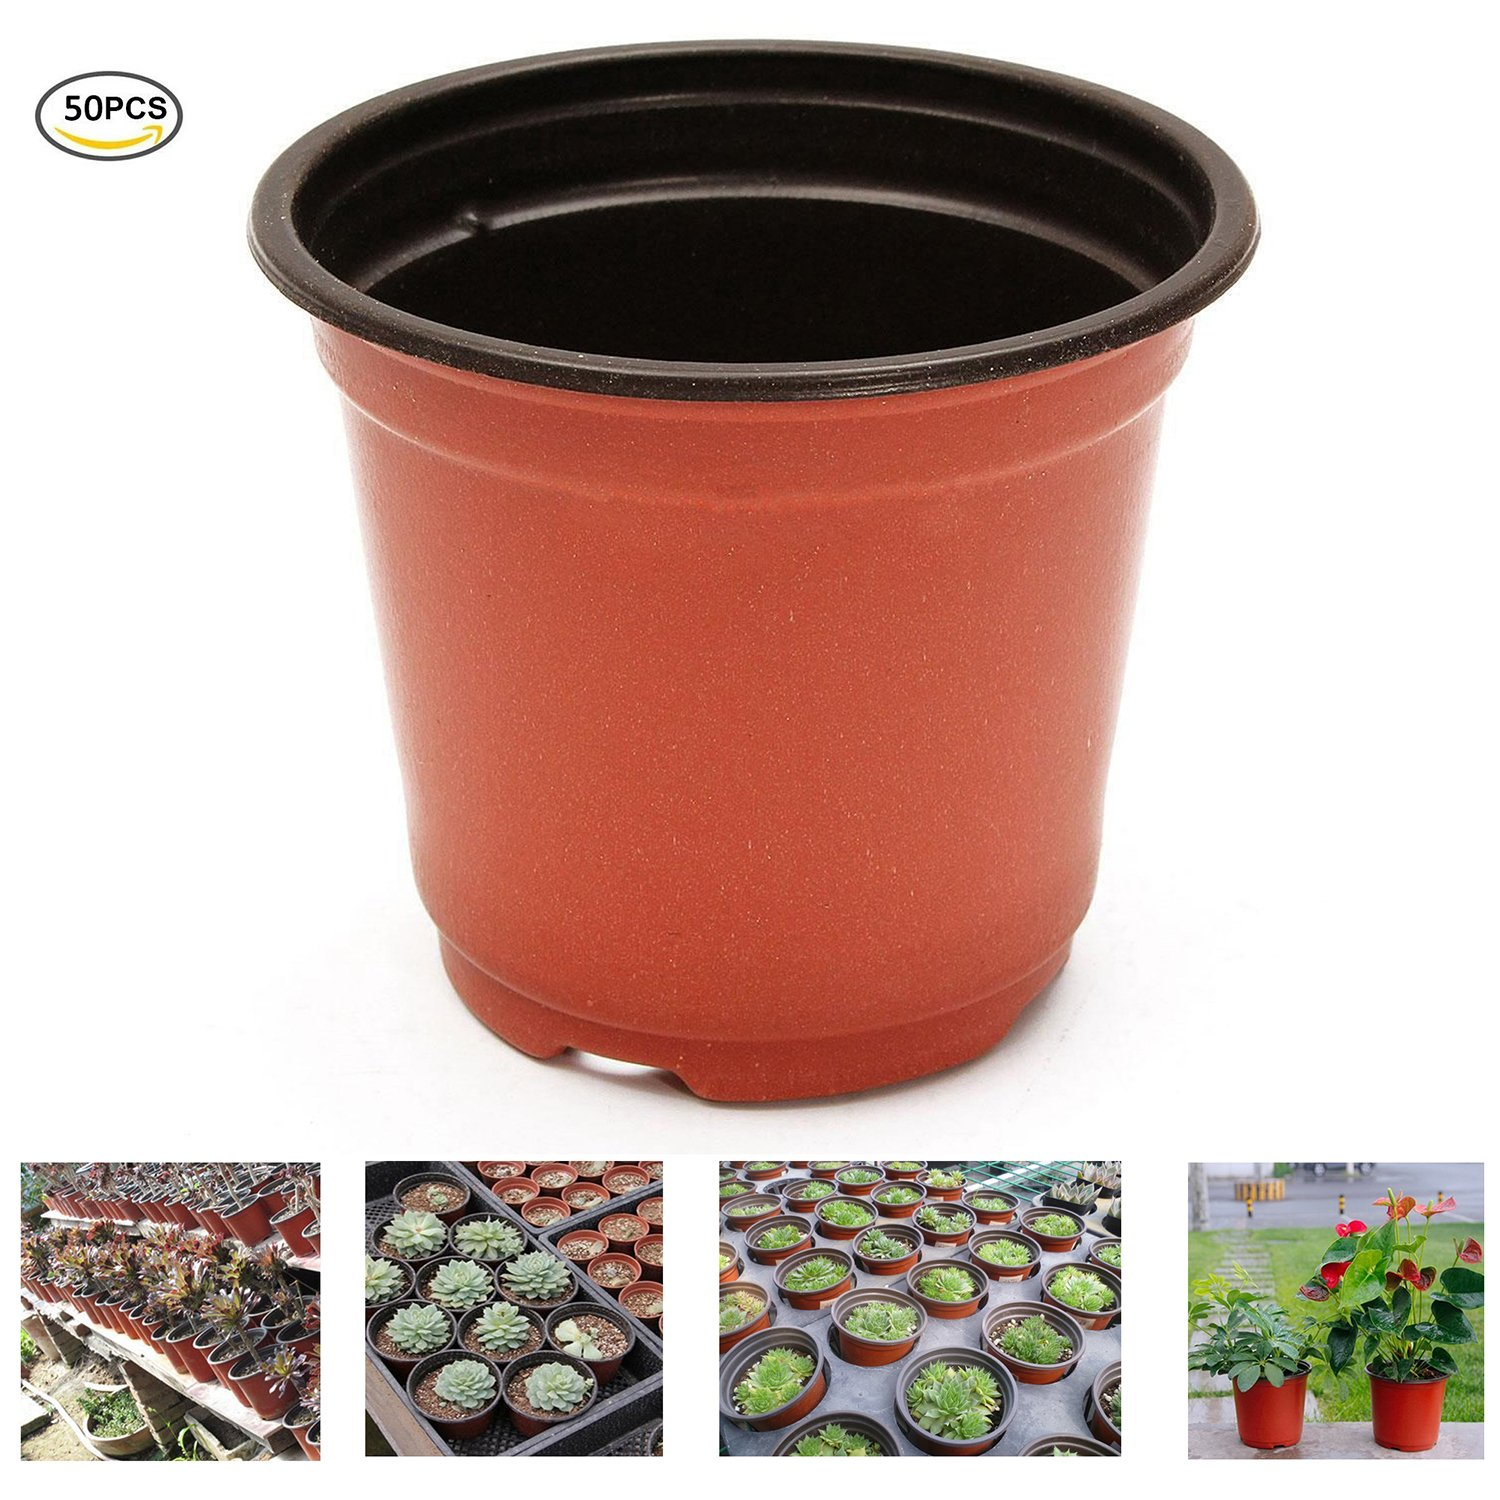 Oubest Plastic Plant Nursery Pots 6'' 50 pcs Reusable for Seed Starting Seedlings Cuttings Transplanting Flower Plant Pots by Oubest